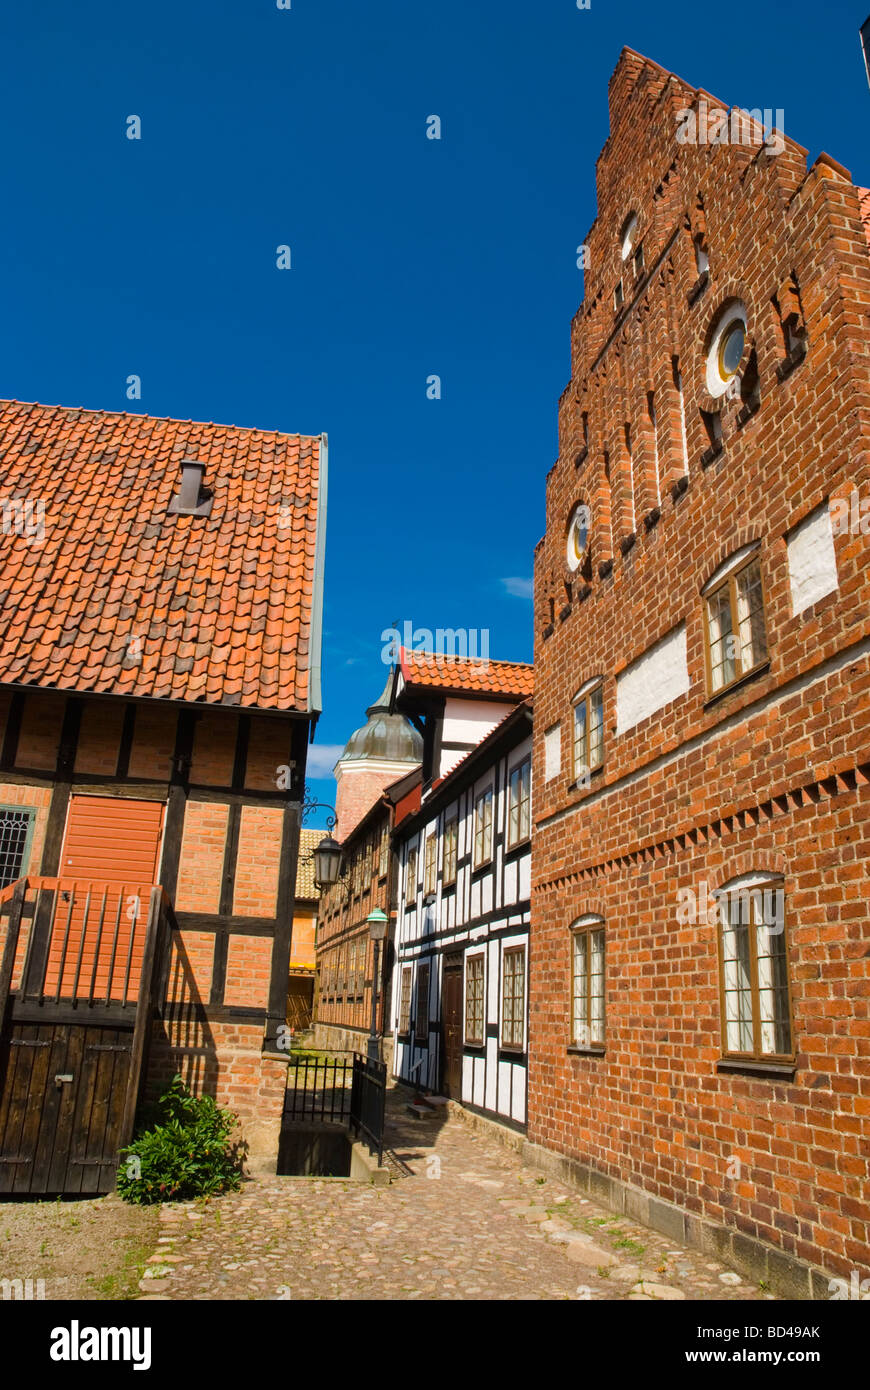 Historical houses at Kulturen the open air museum in Lund Skåne Sweden Europe - Stock Image